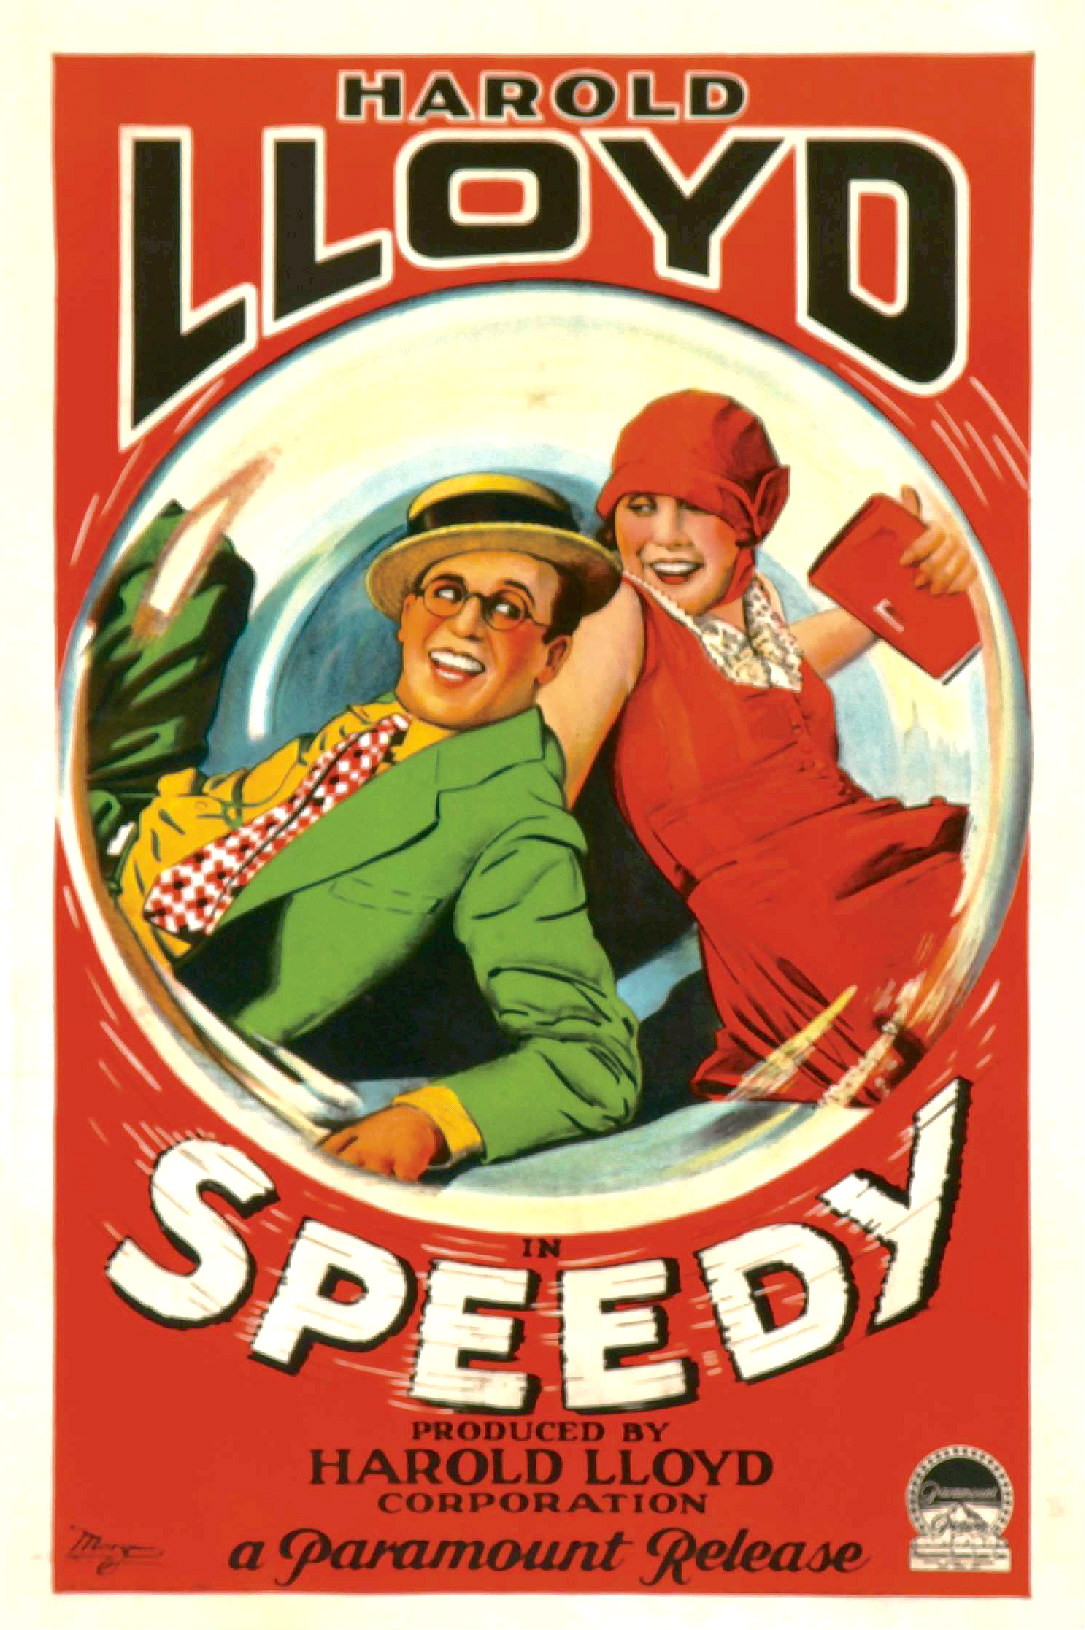 Image result for speedy harold lloyd